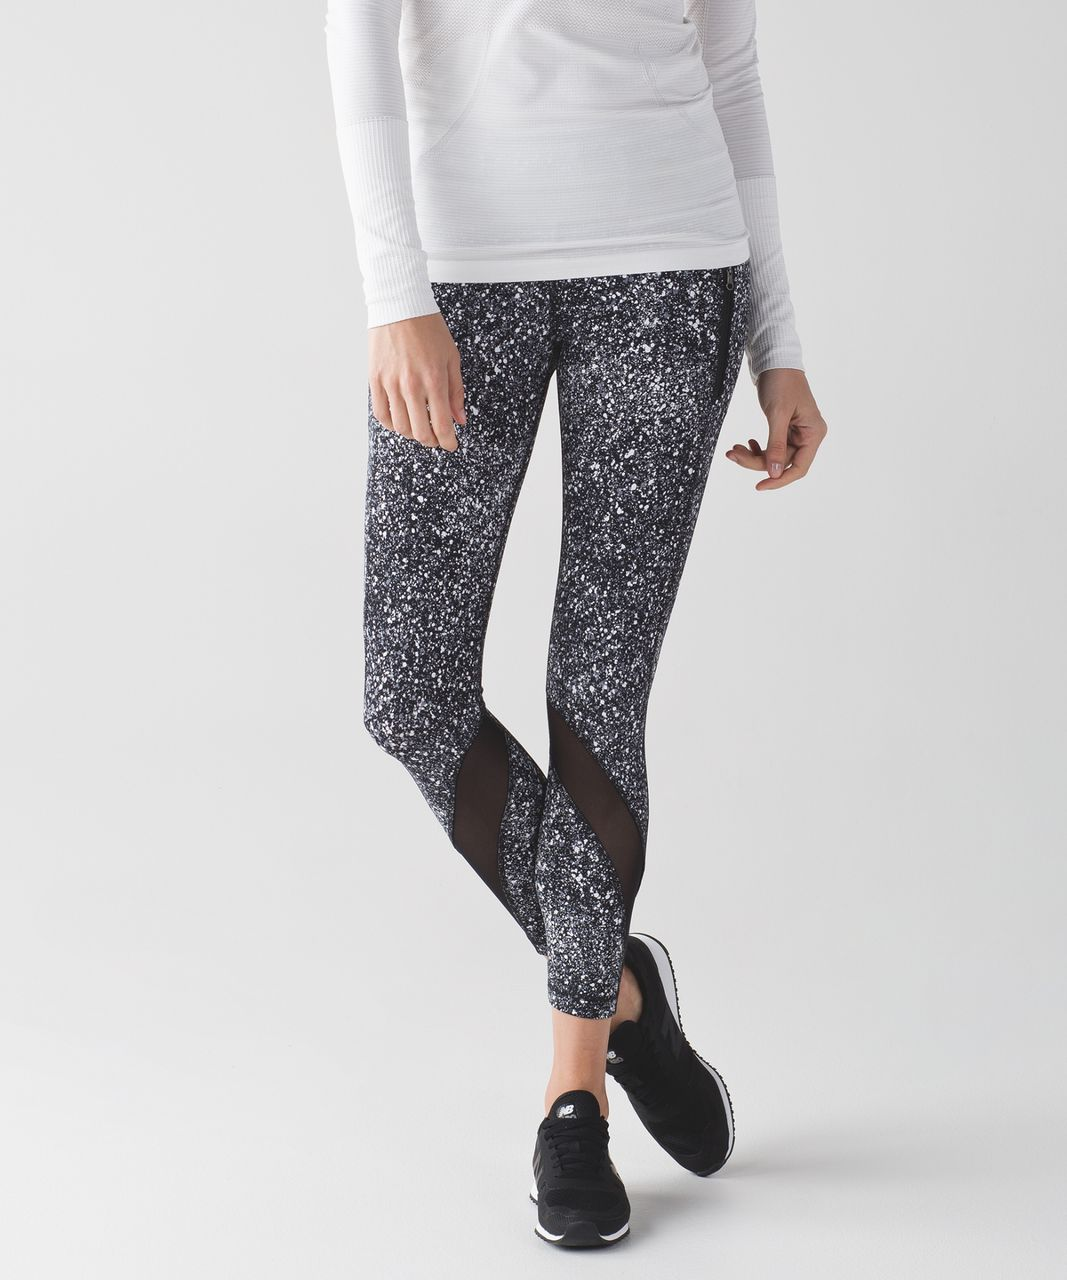 8b37fbb818 Lululemon Inspire Tight II - Splatter White Black / Black - lulu fanatics